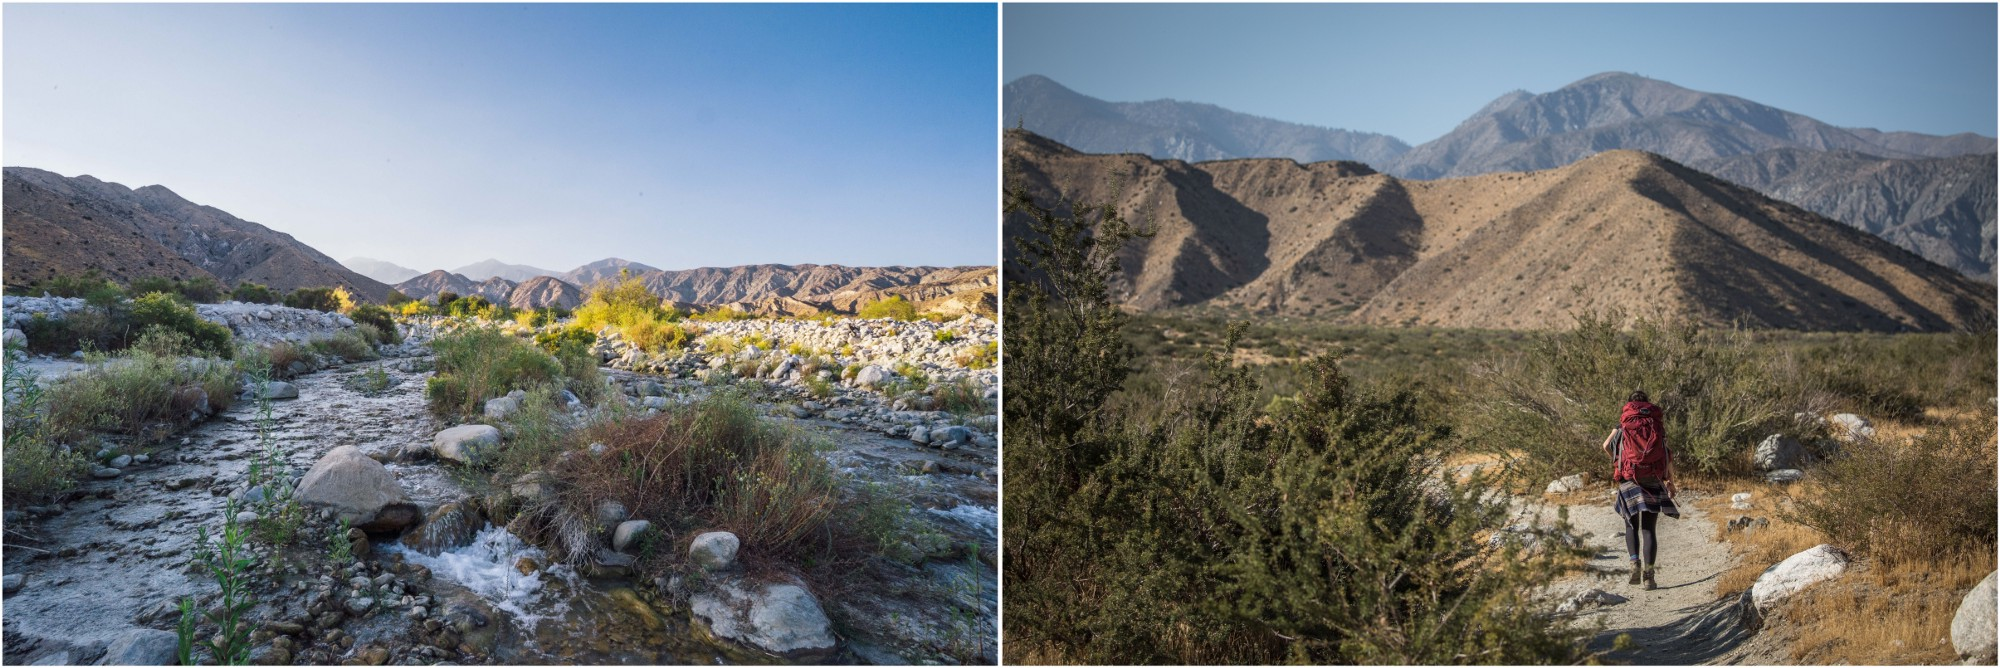 - Left: The Whitewater River is a beautiful sight in the dry desert environment of Sand to Snow National Monument. You can pitch your tent nearby on one of the sandy beaches. Right: On the PCT.